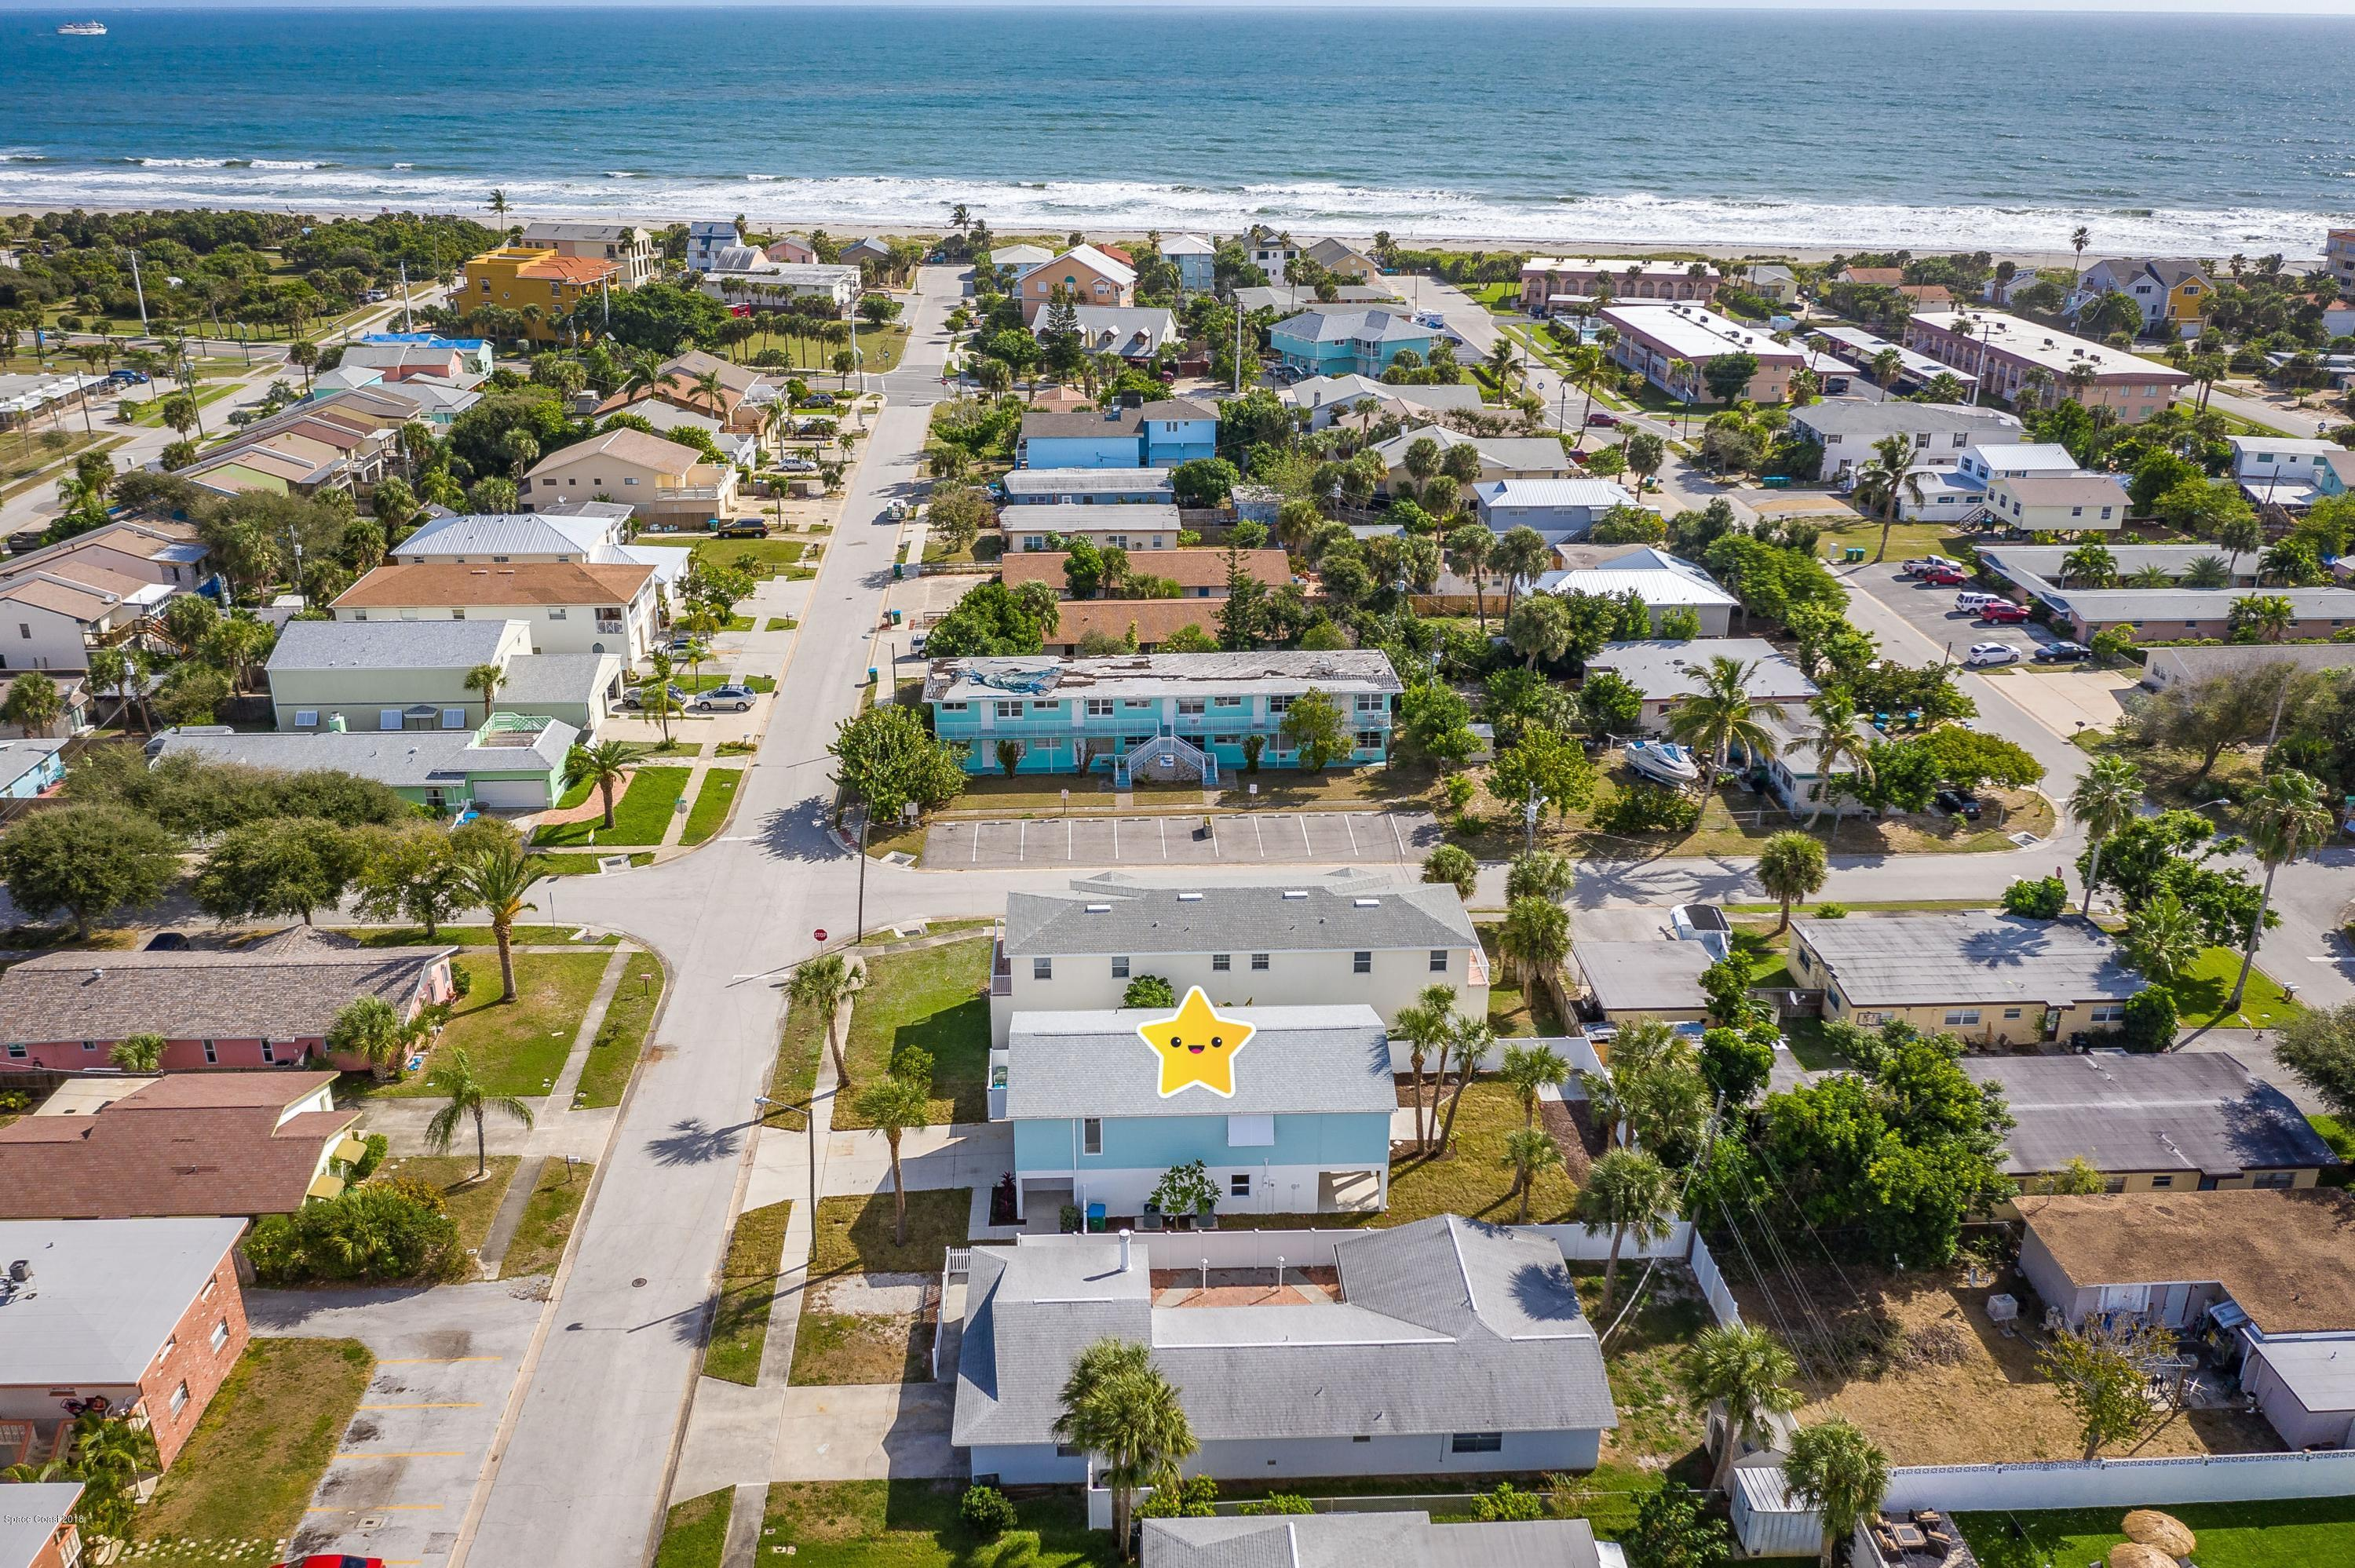 Single Family Home for Sale at 417 Adams 417 Adams Cape Canaveral, Florida 32920 United States